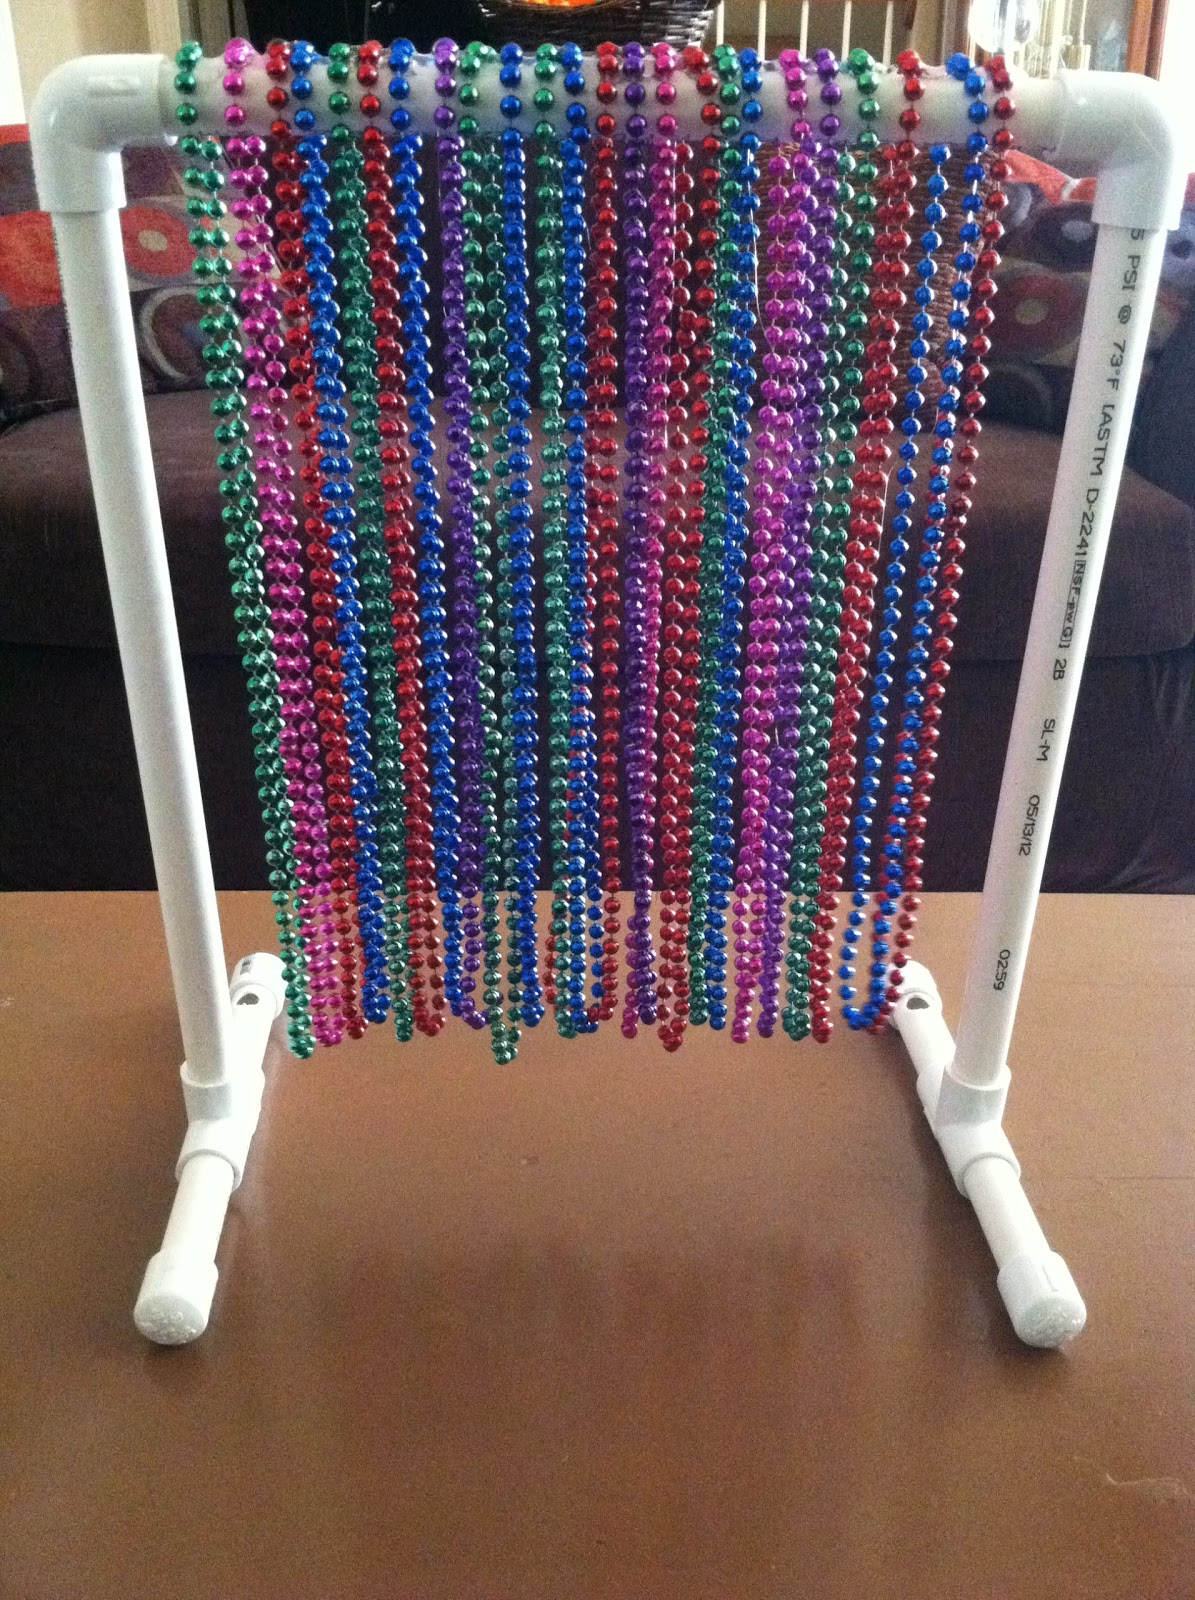 Little miss kim 39 s class bead box for sensory input and for Craft ideas for autistic students